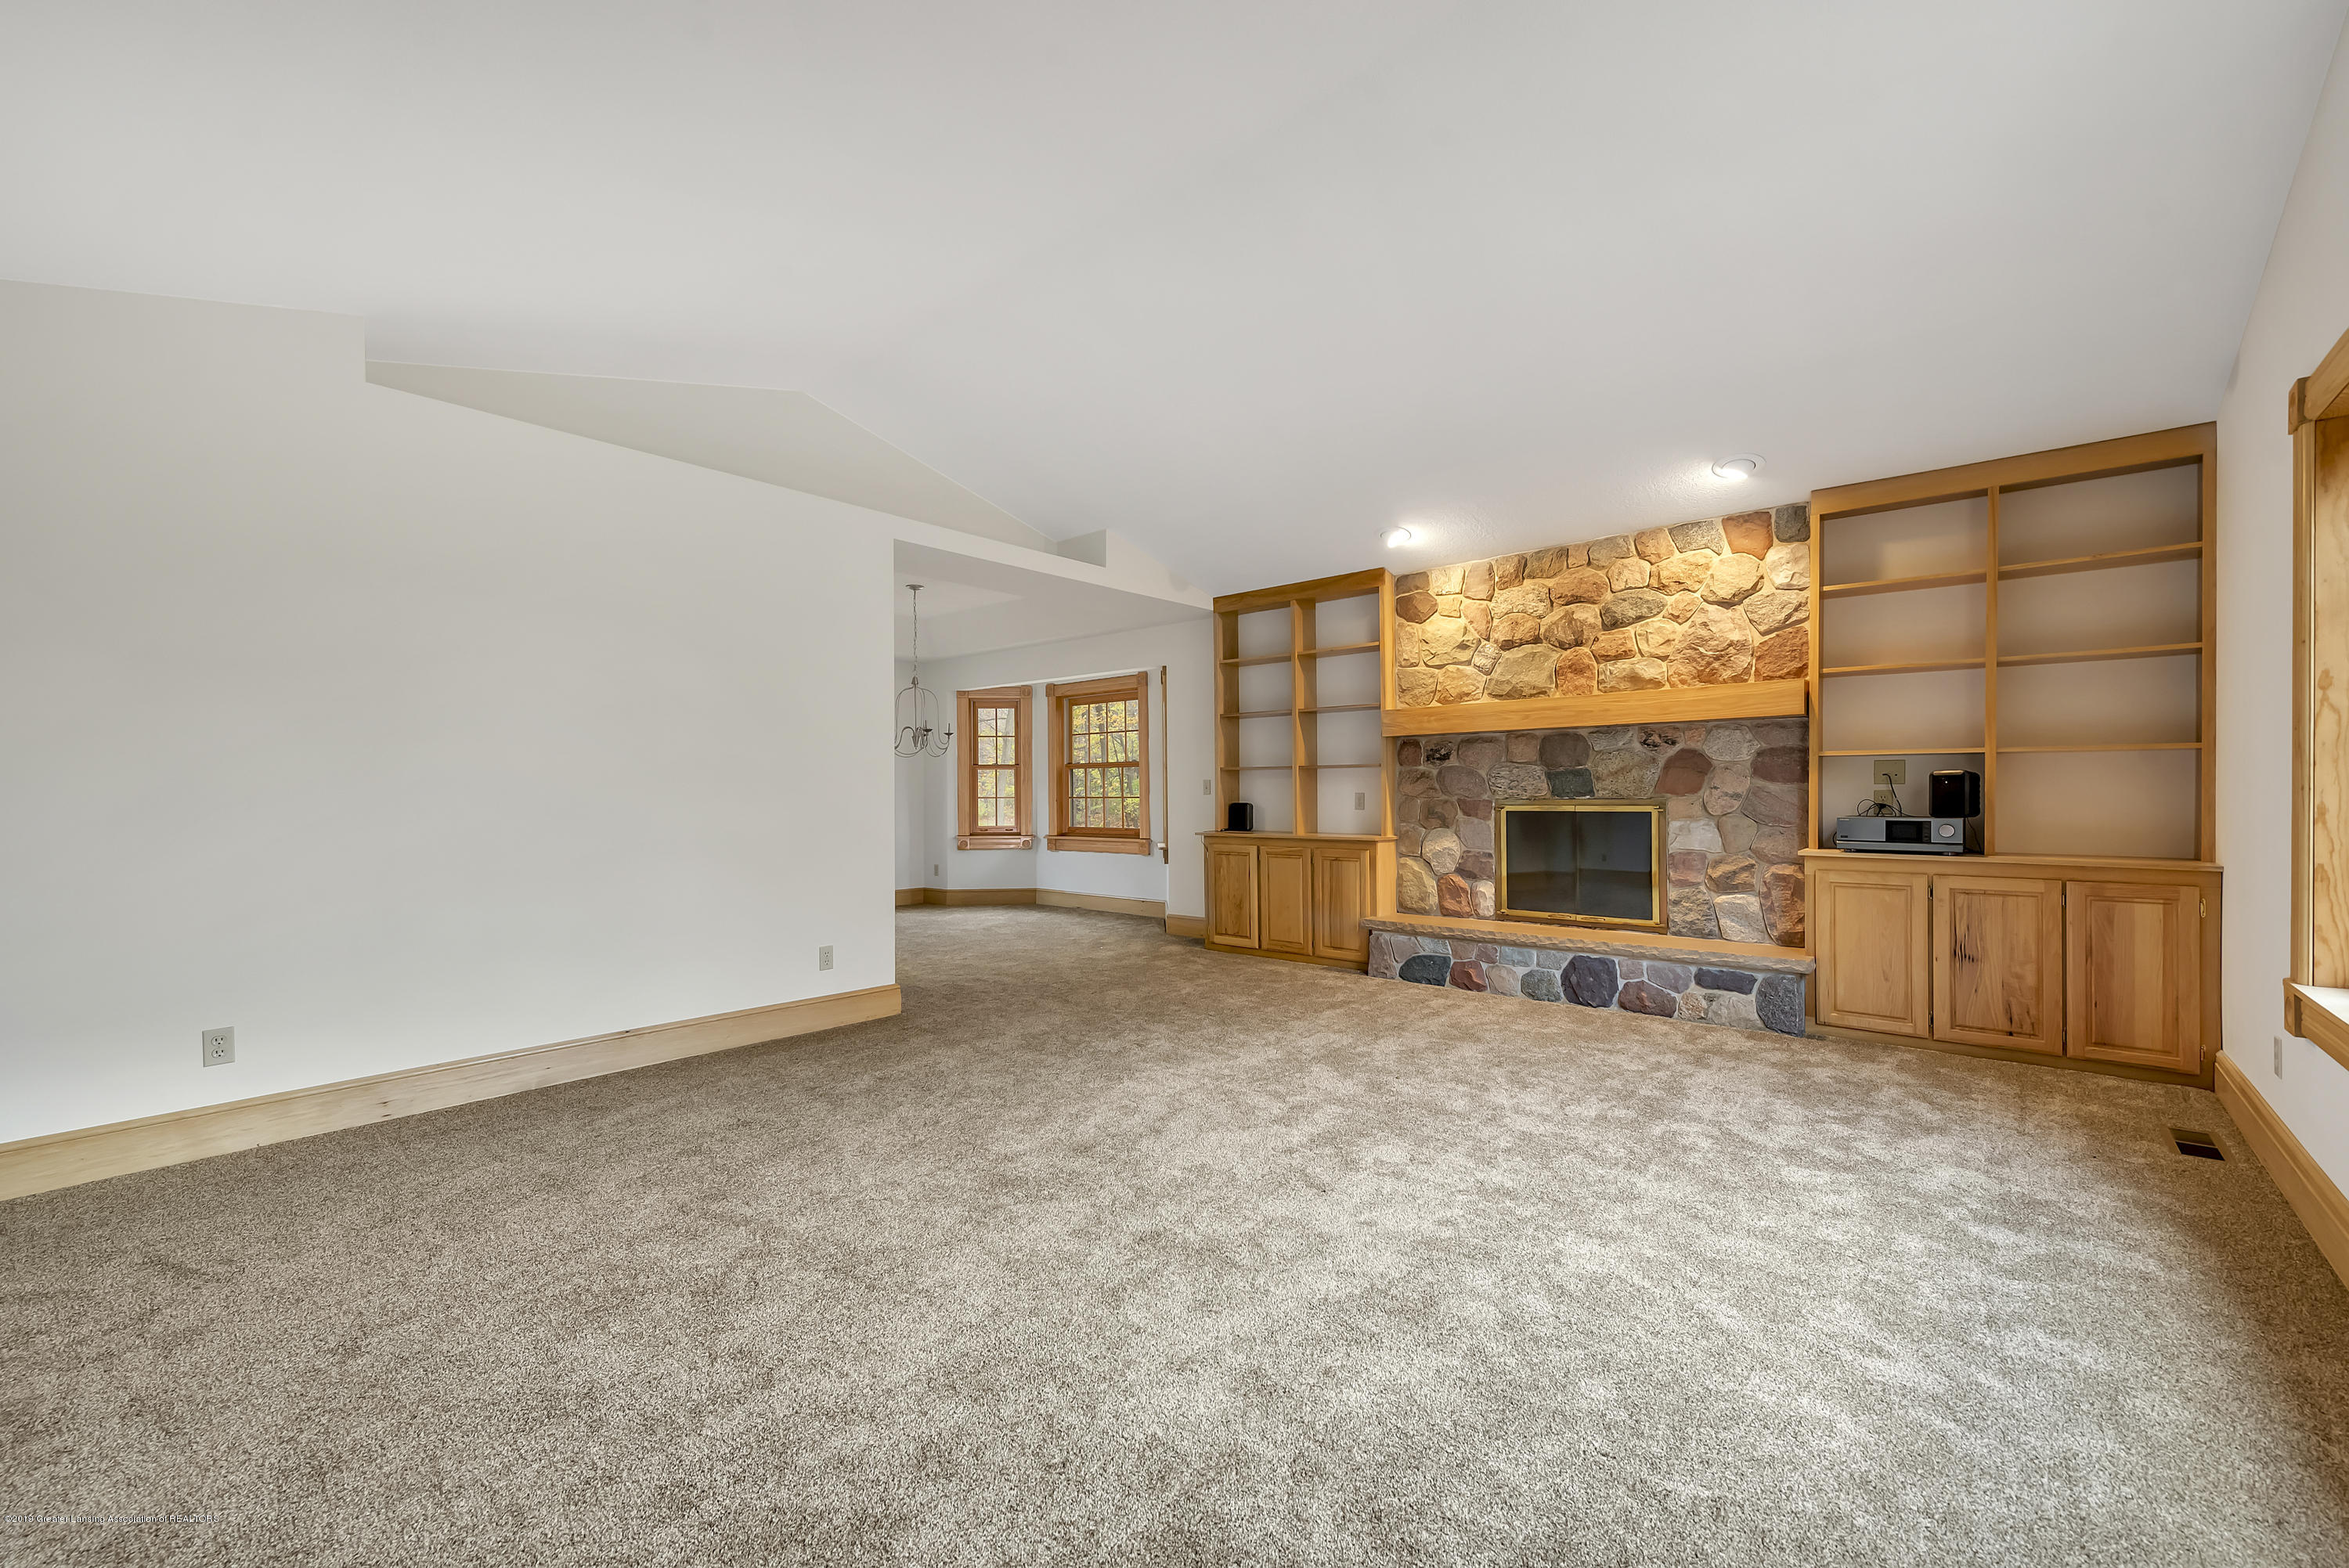 10865 Barnes Rd - 10865-Barnes-Rd-WindowStill-Real-Estate- - 8